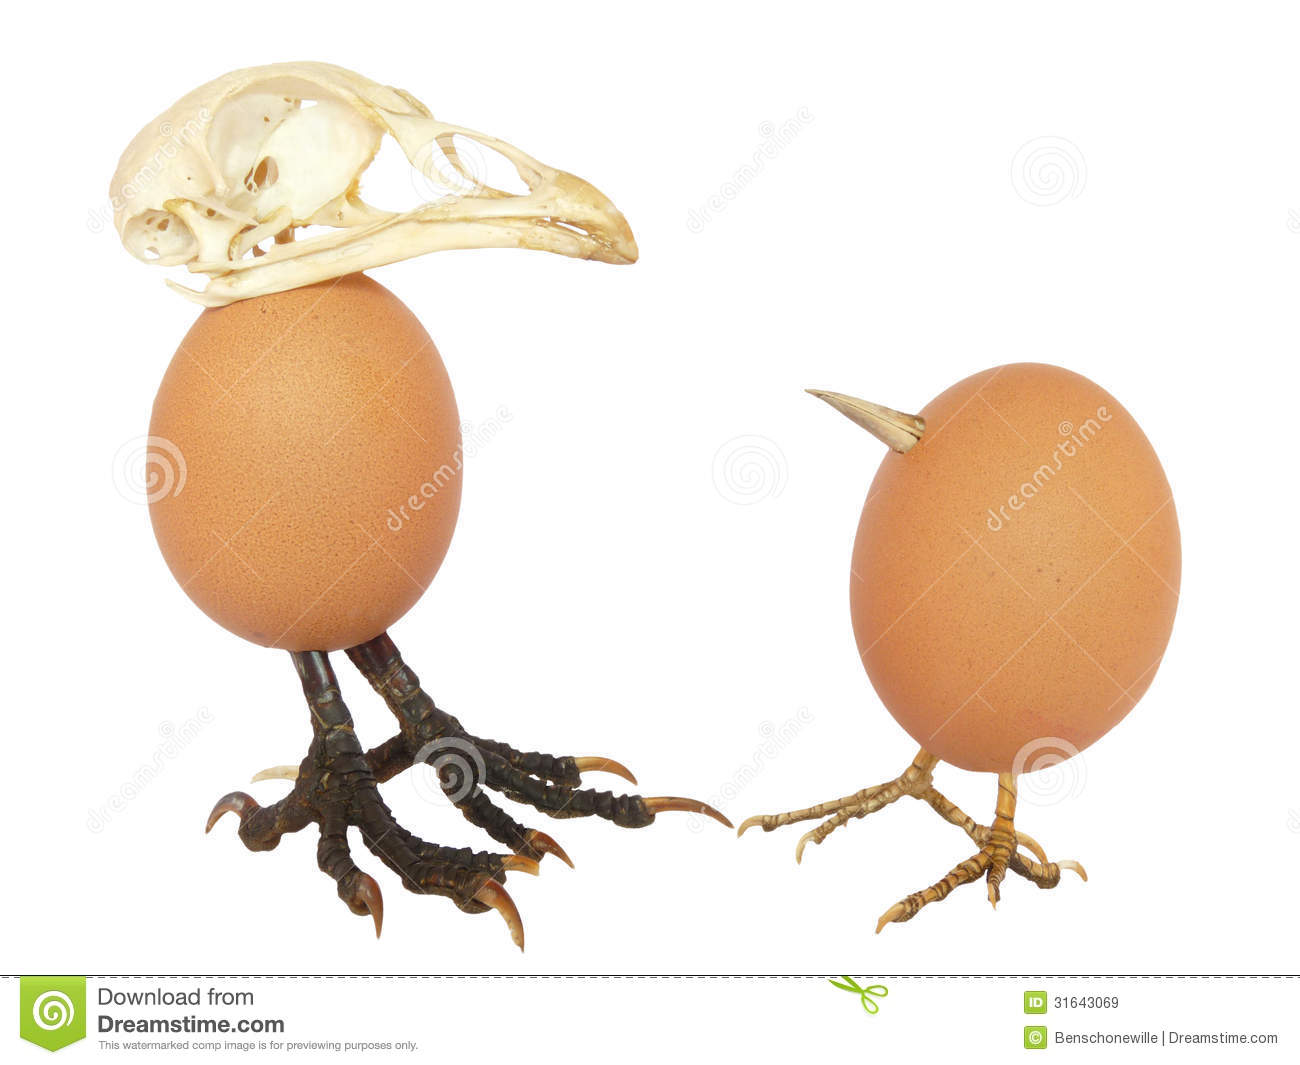 Two Chicken Eggs Looking Like Birds With A Beak A Skull And Legs As